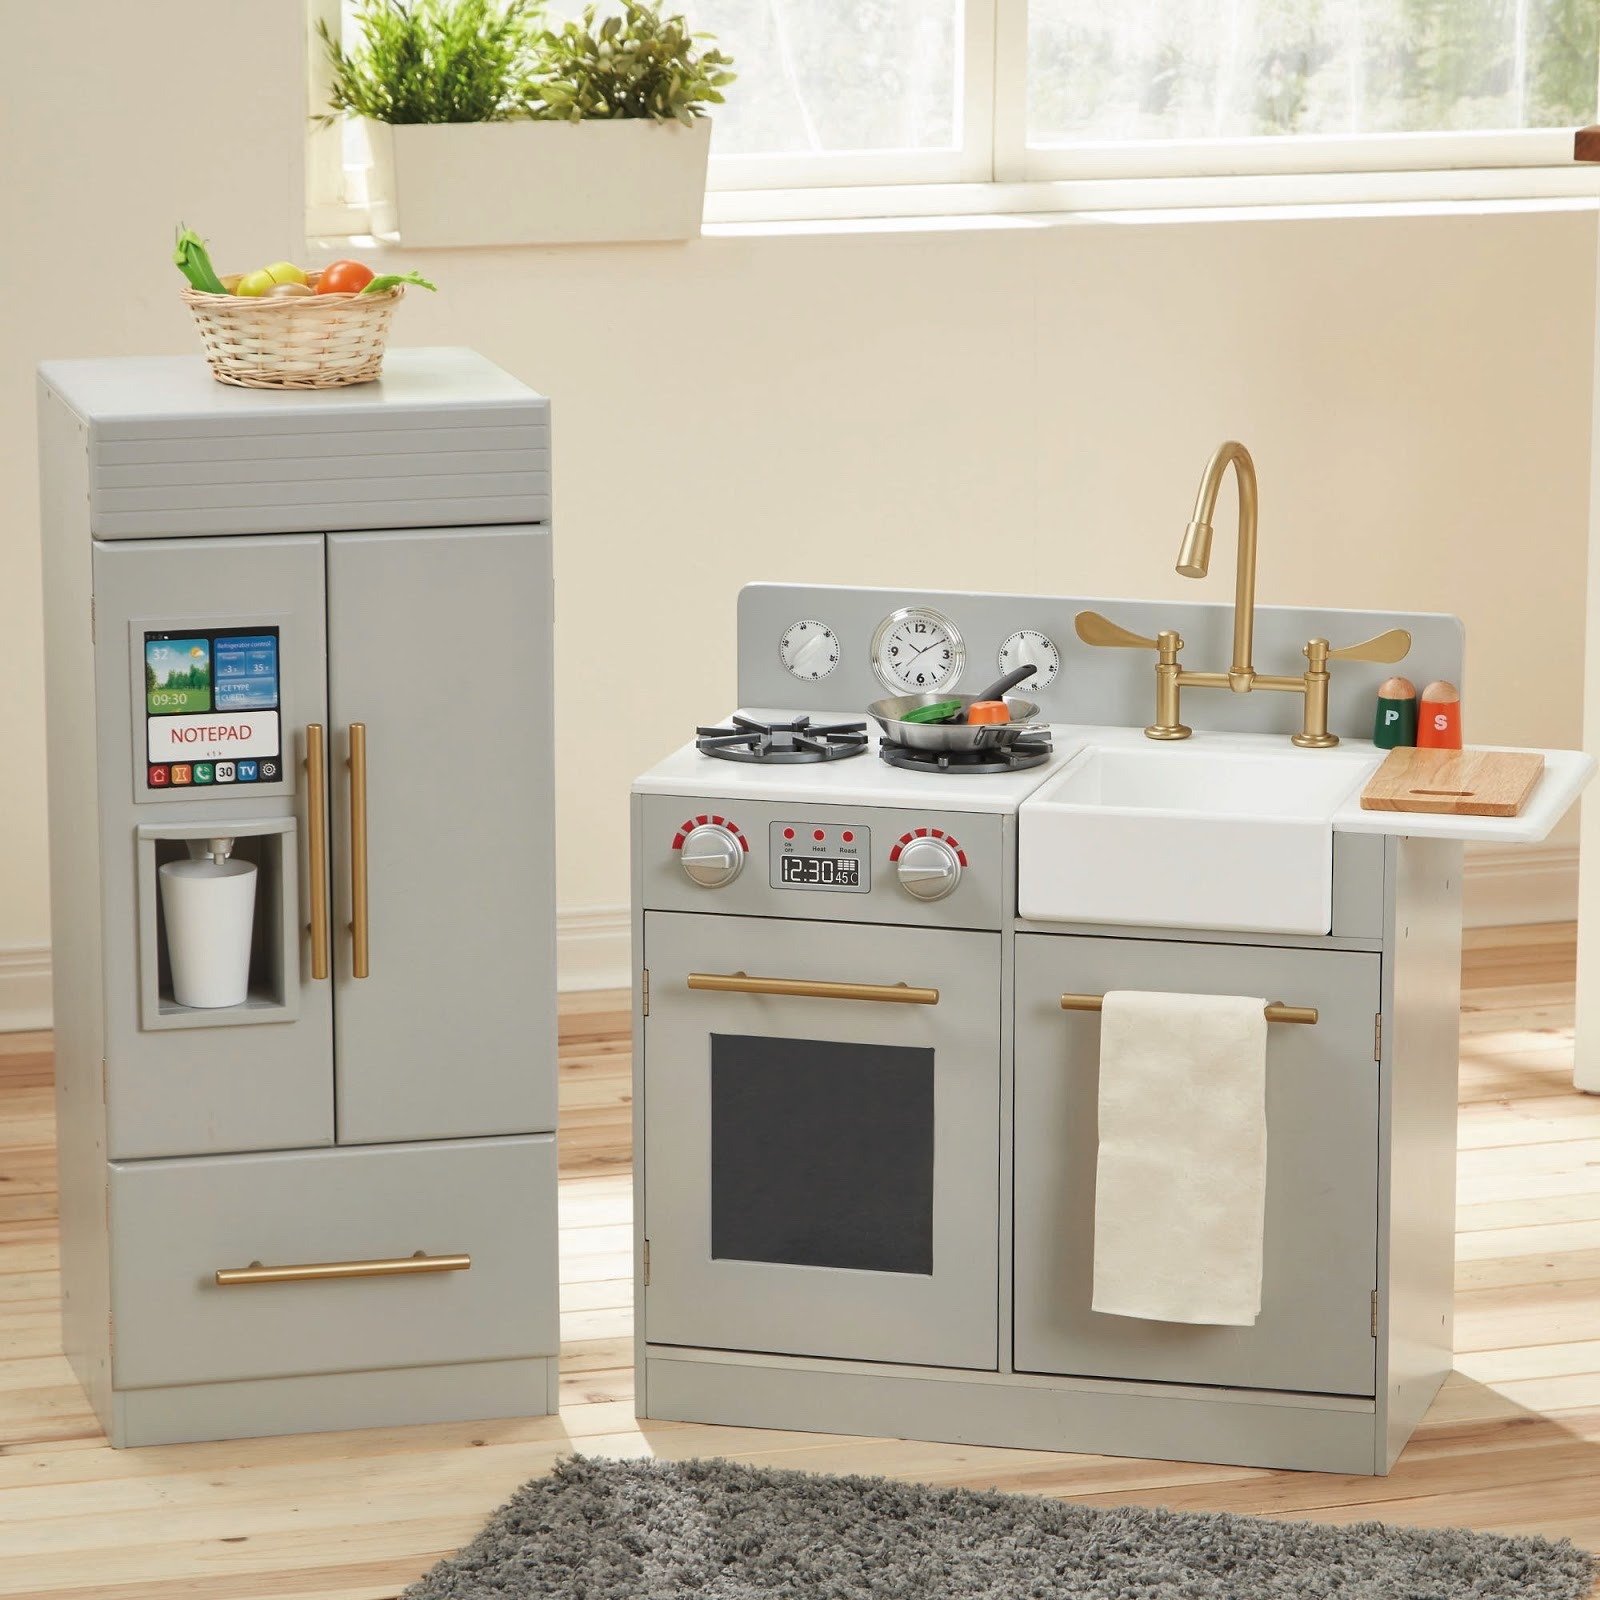 look for less modern grey toy kitchen  pretty real - teamson urban adventure kitchen  (on sale from )